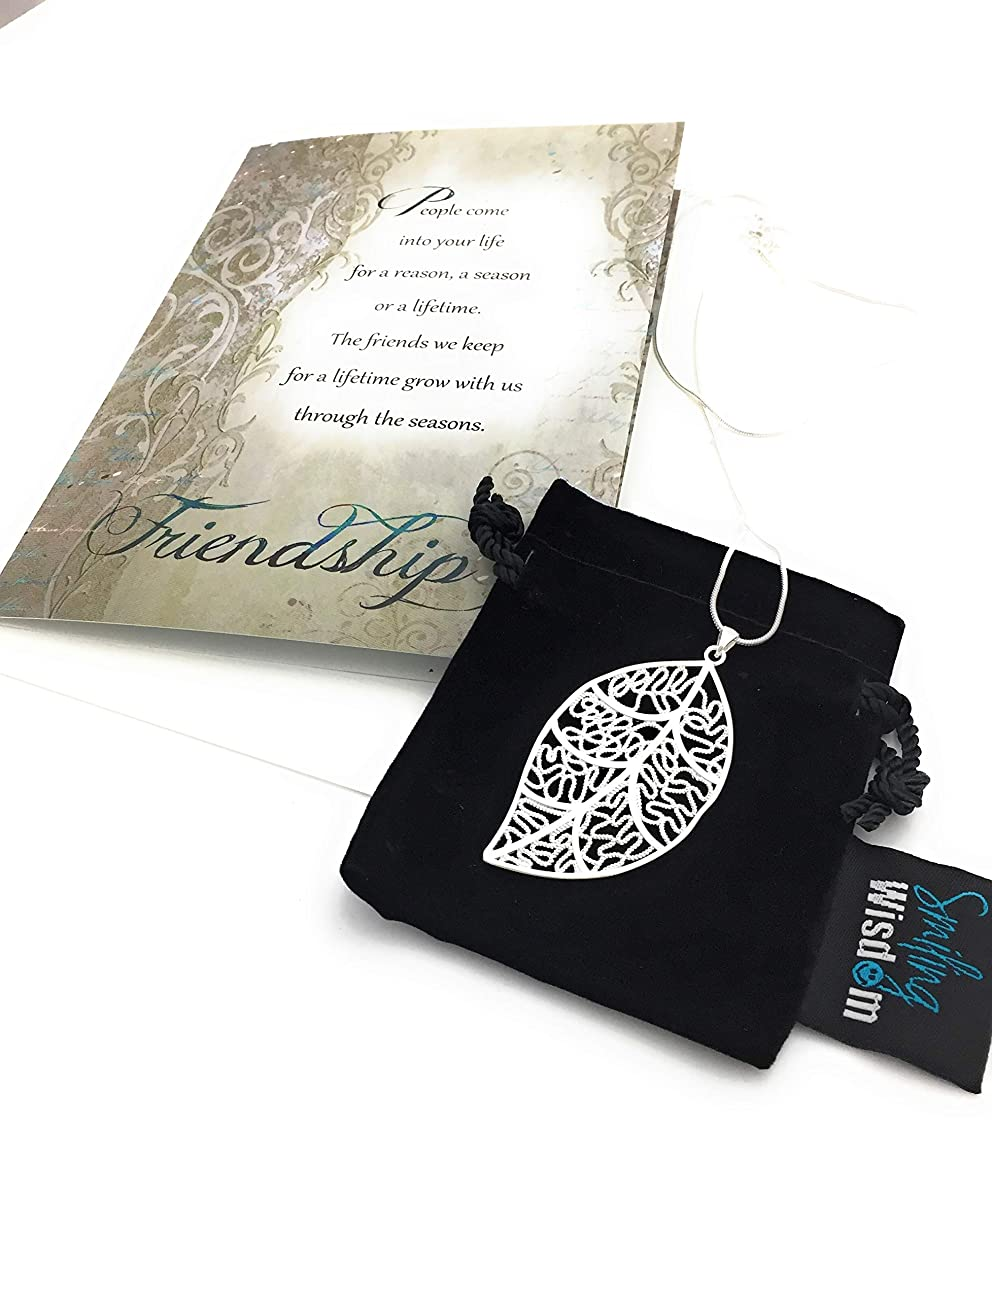 Smiling Wisdom - Silver Leaf Necklace Reason Season Lifetime BFF Gift Set - Friendship Card - Leaf Pendant Sentiment - For Special Good True Best Woman Friend - .925 Silver Plated - BFF